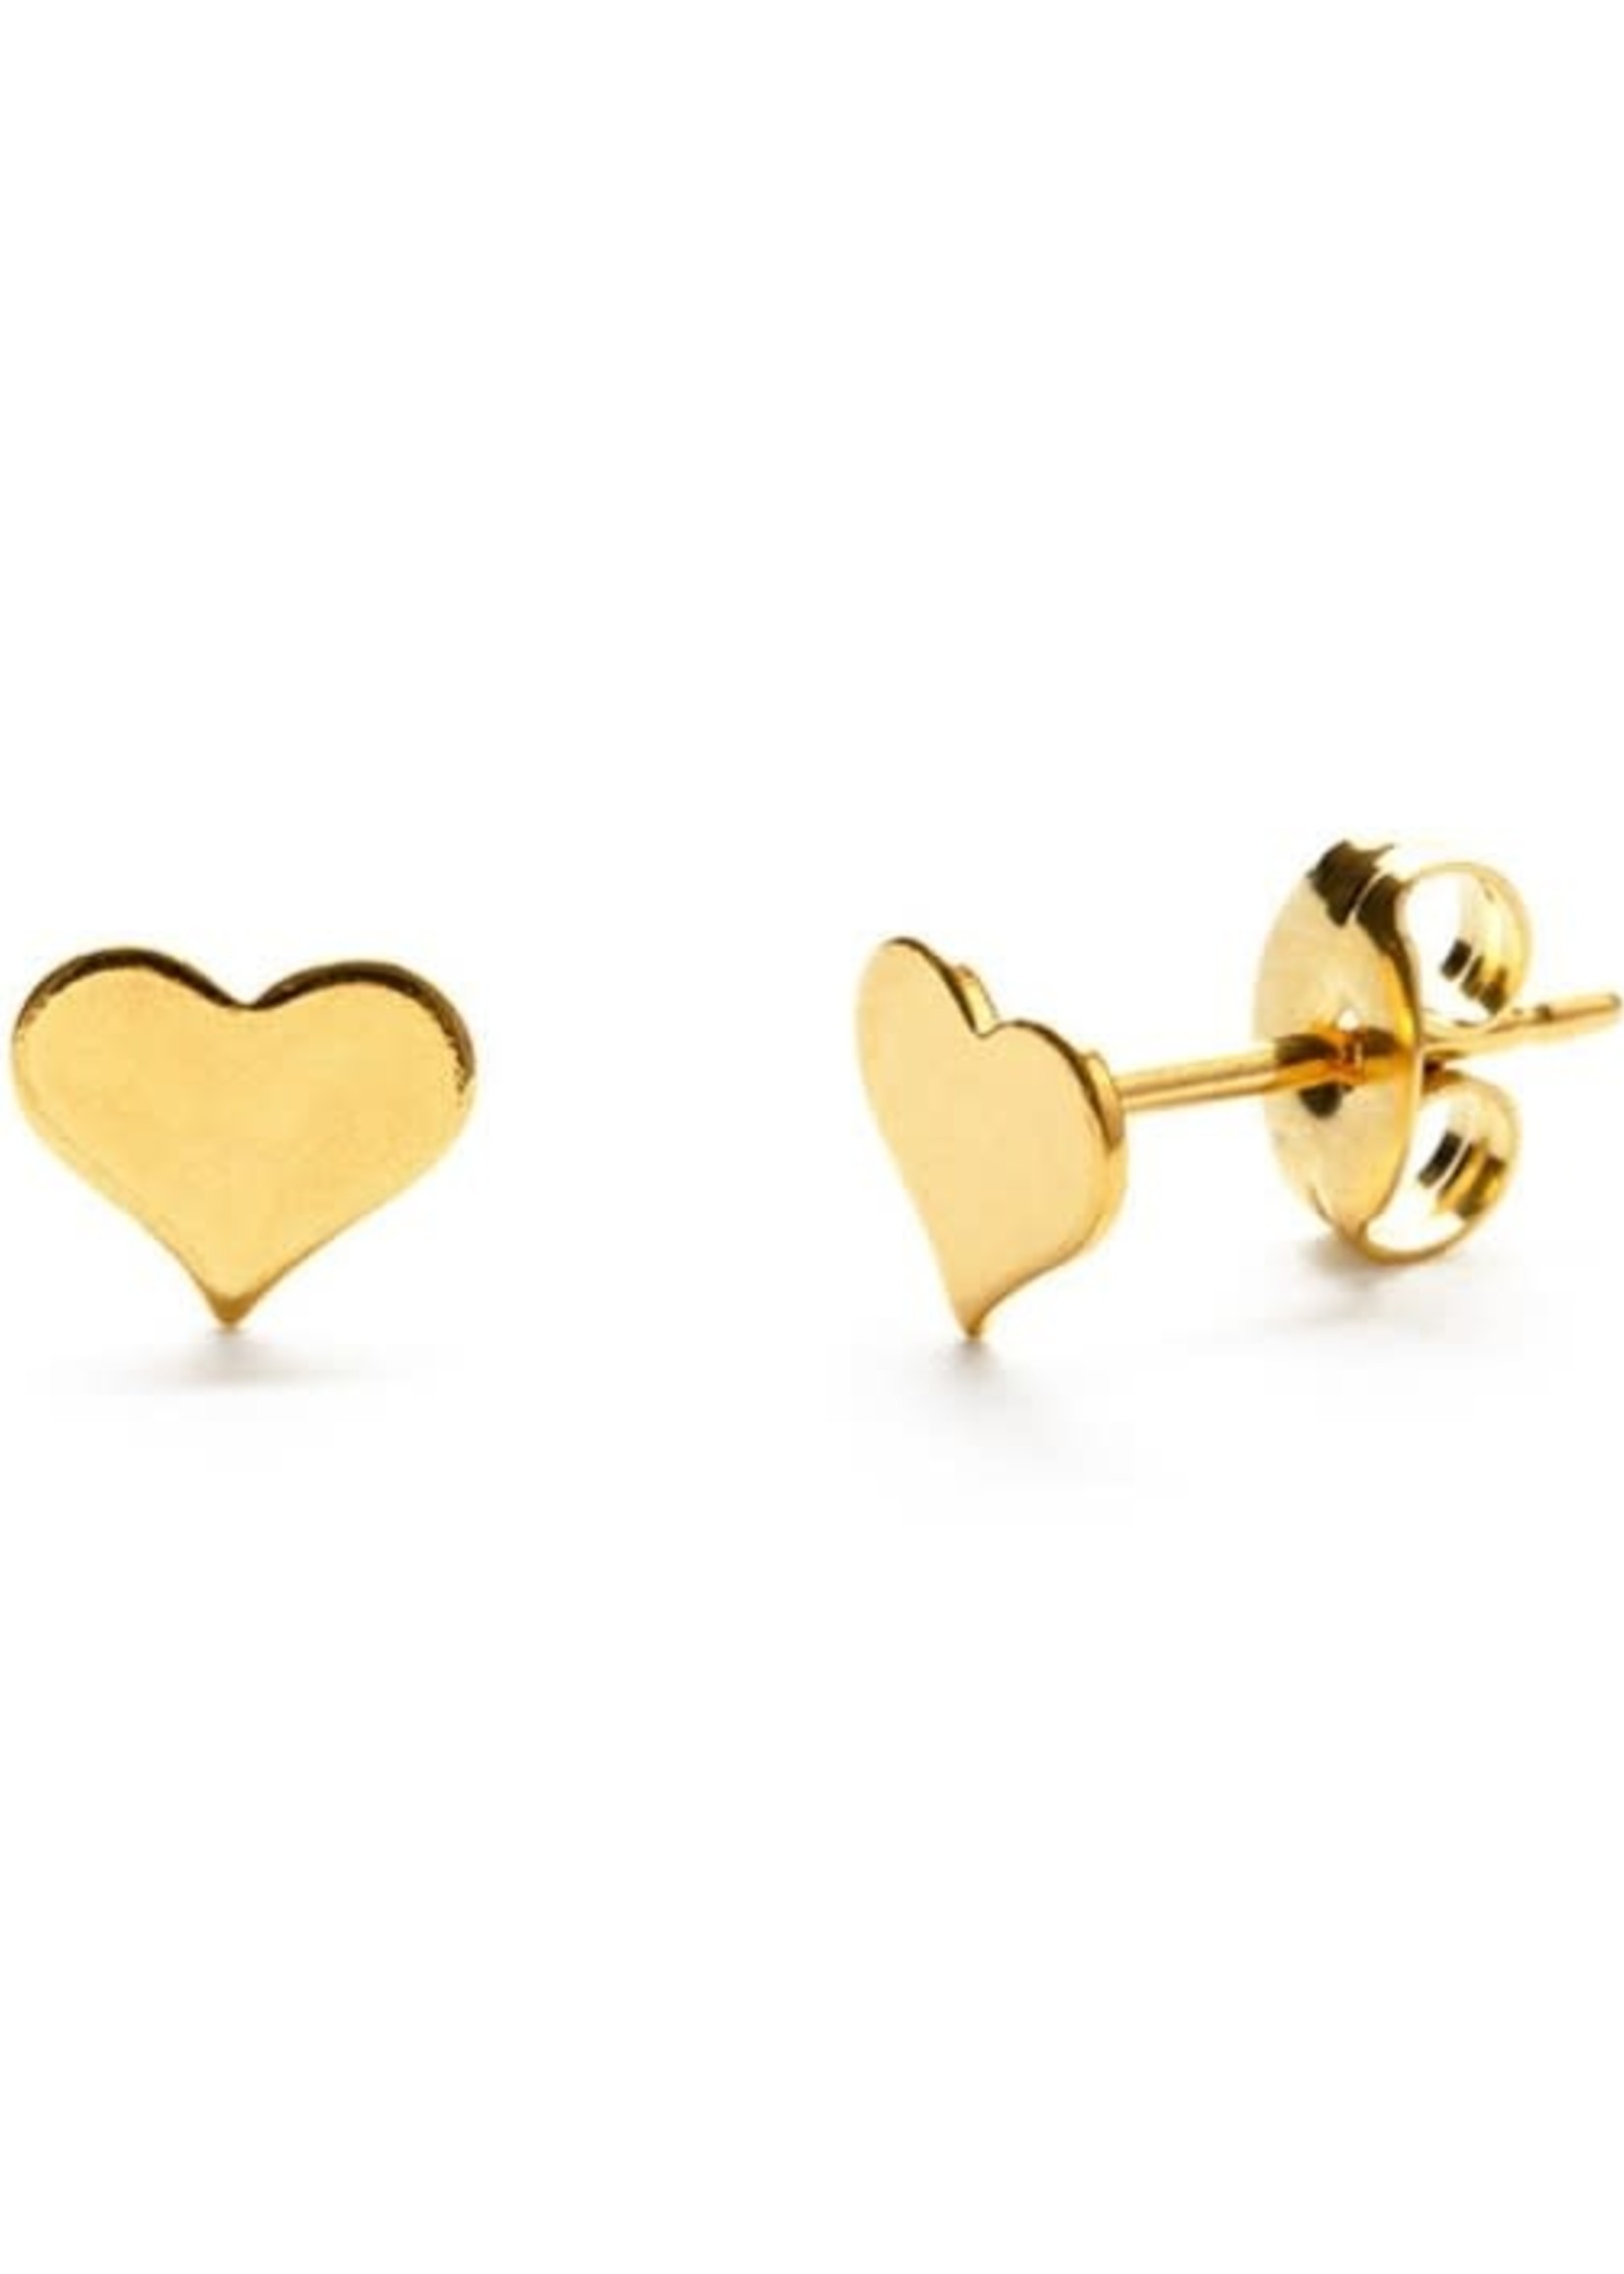 AMANO studio HEART studs, 24K gold plated